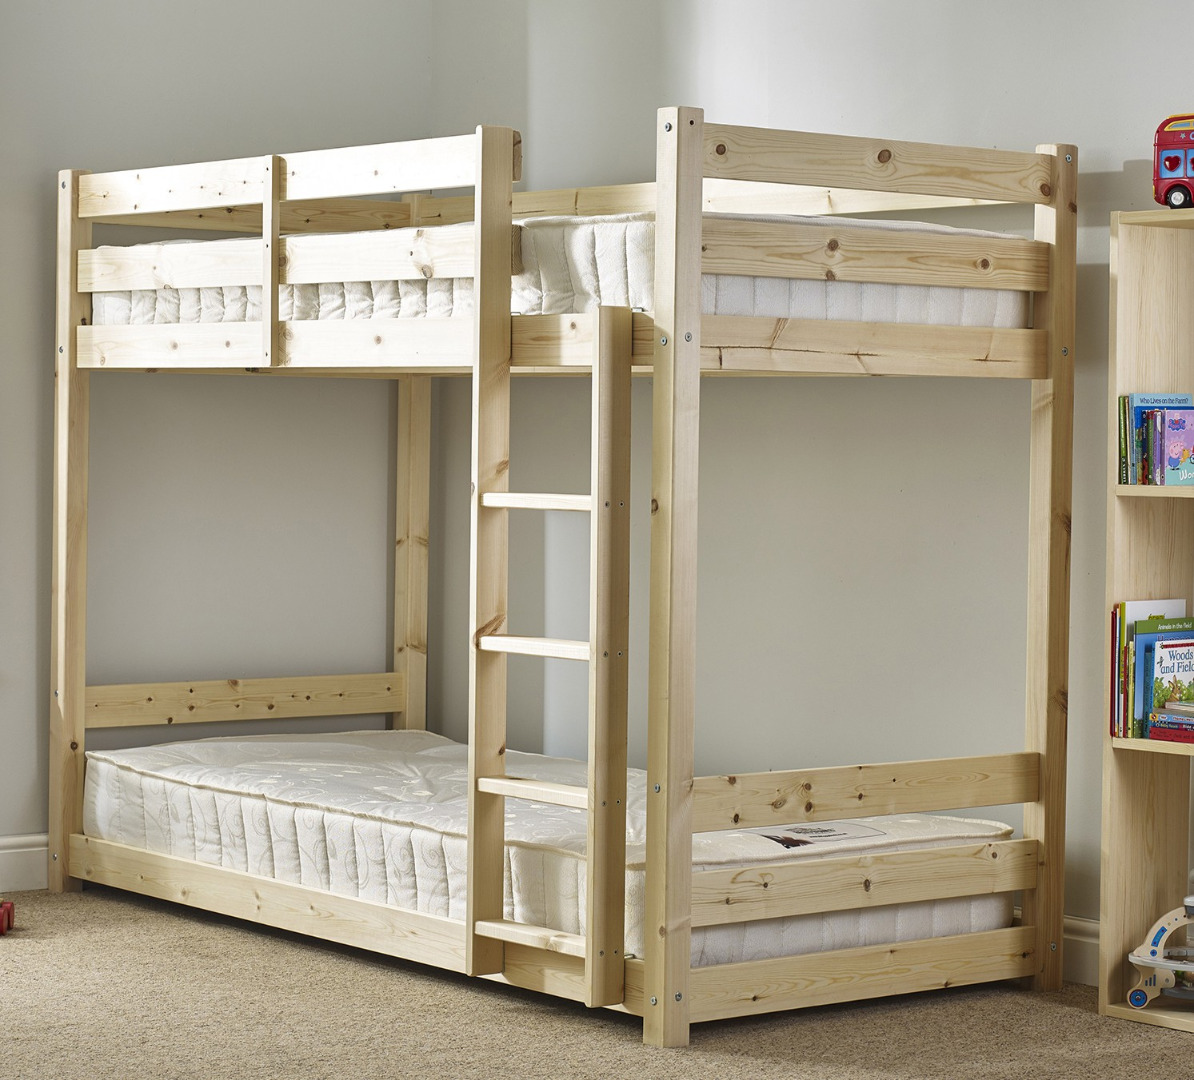 Length Of A Double Bed Pluto 3ft Single Short Length Solid Pine Bunk Bed